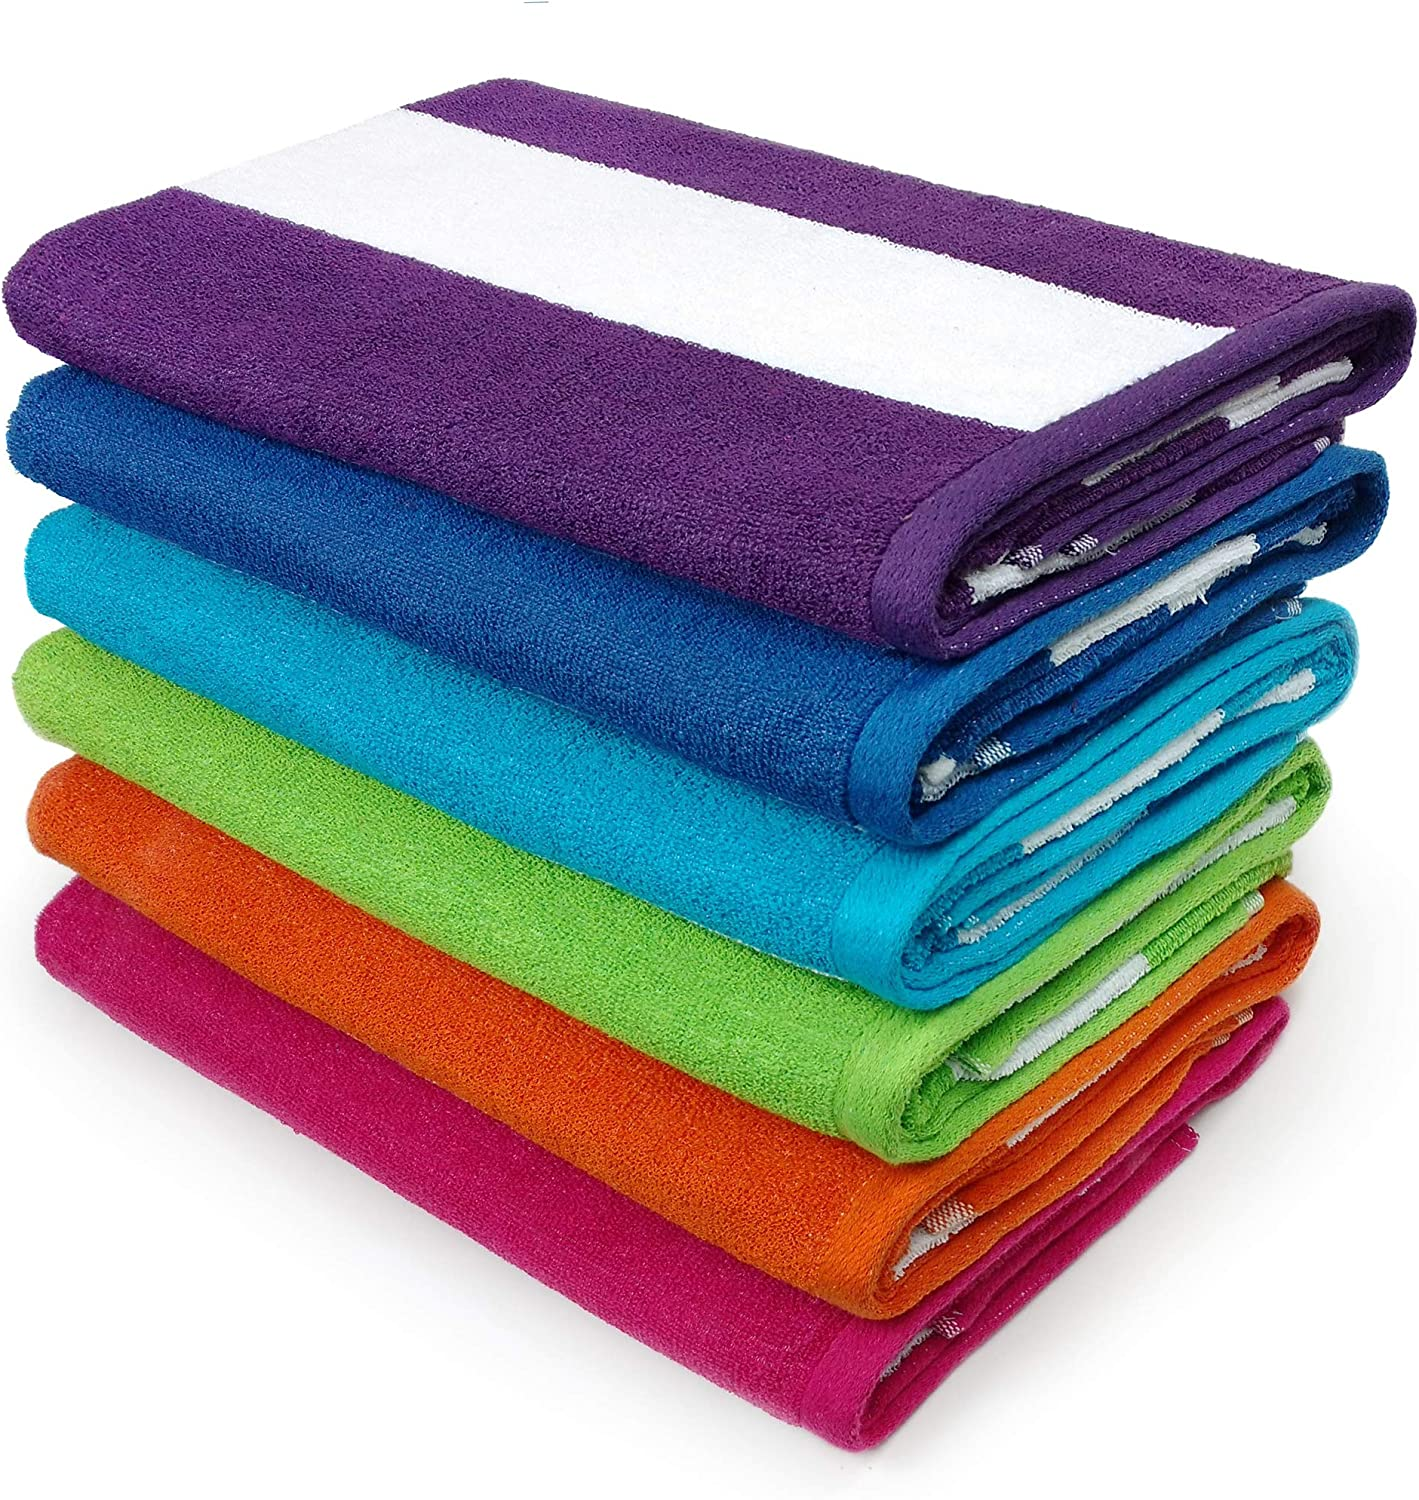 Kaufman - Cabana Terry Loop Towel 6-Pack